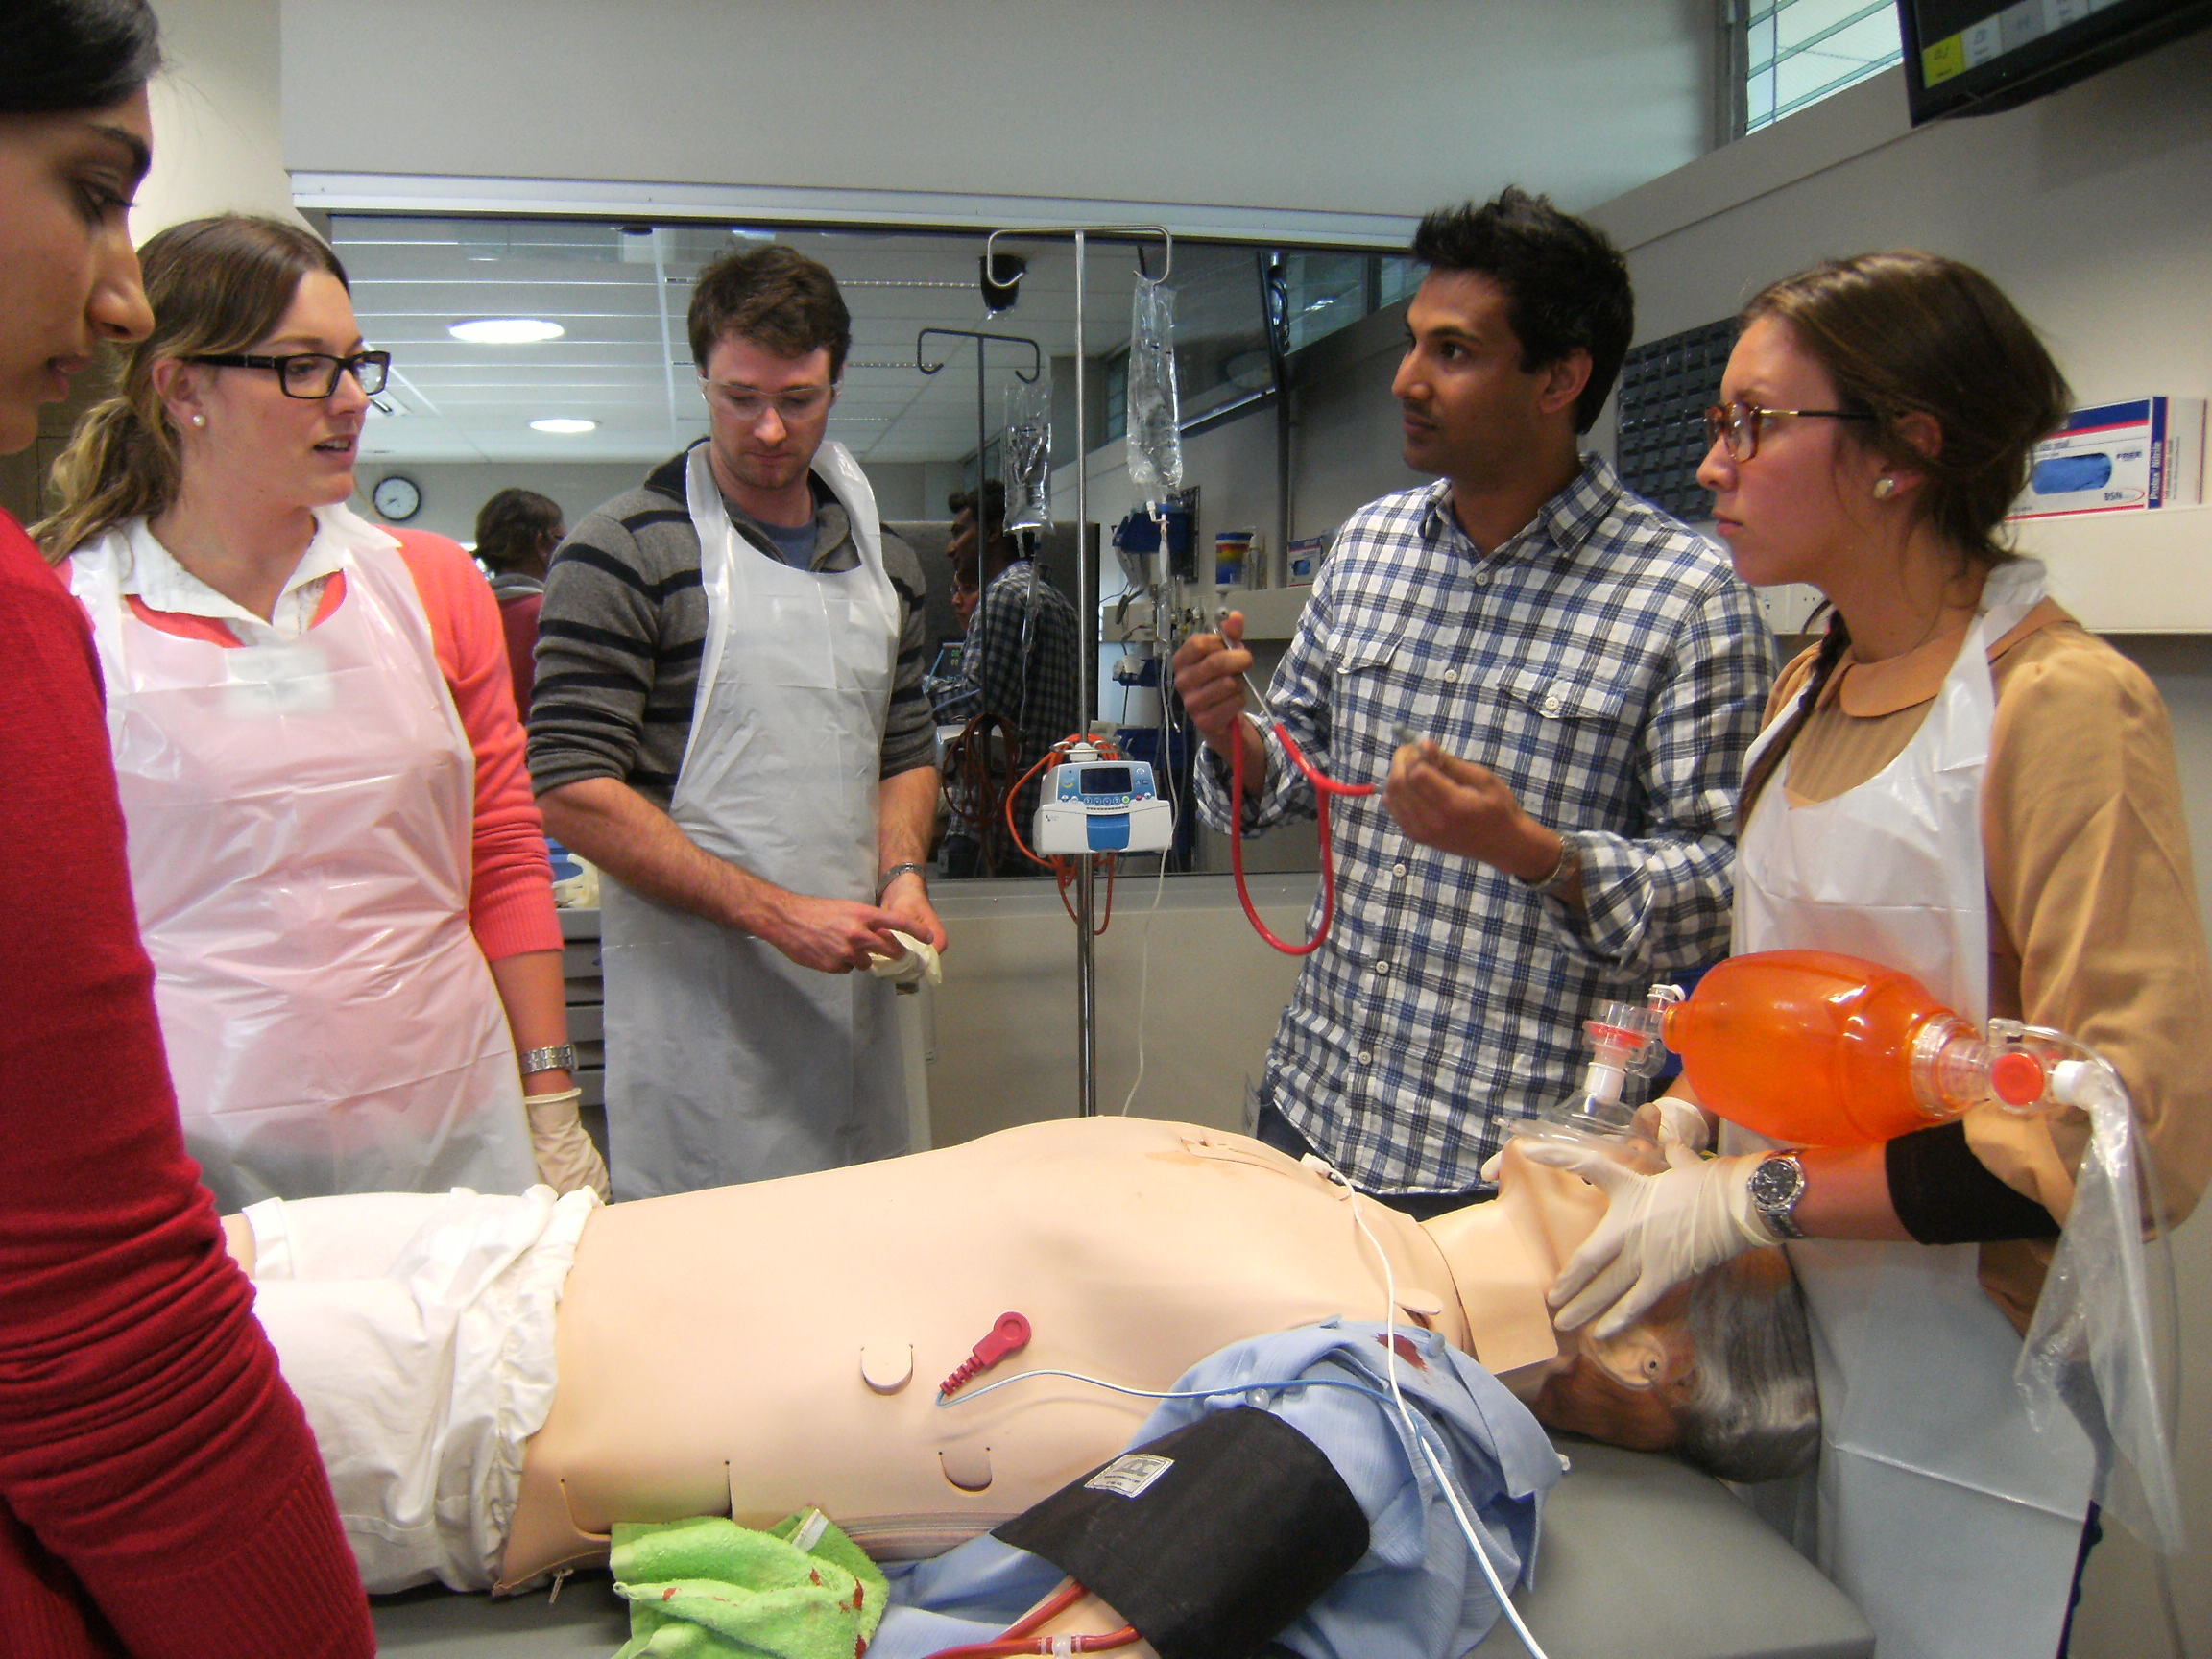 Students in a simulated trauma incident with manikin